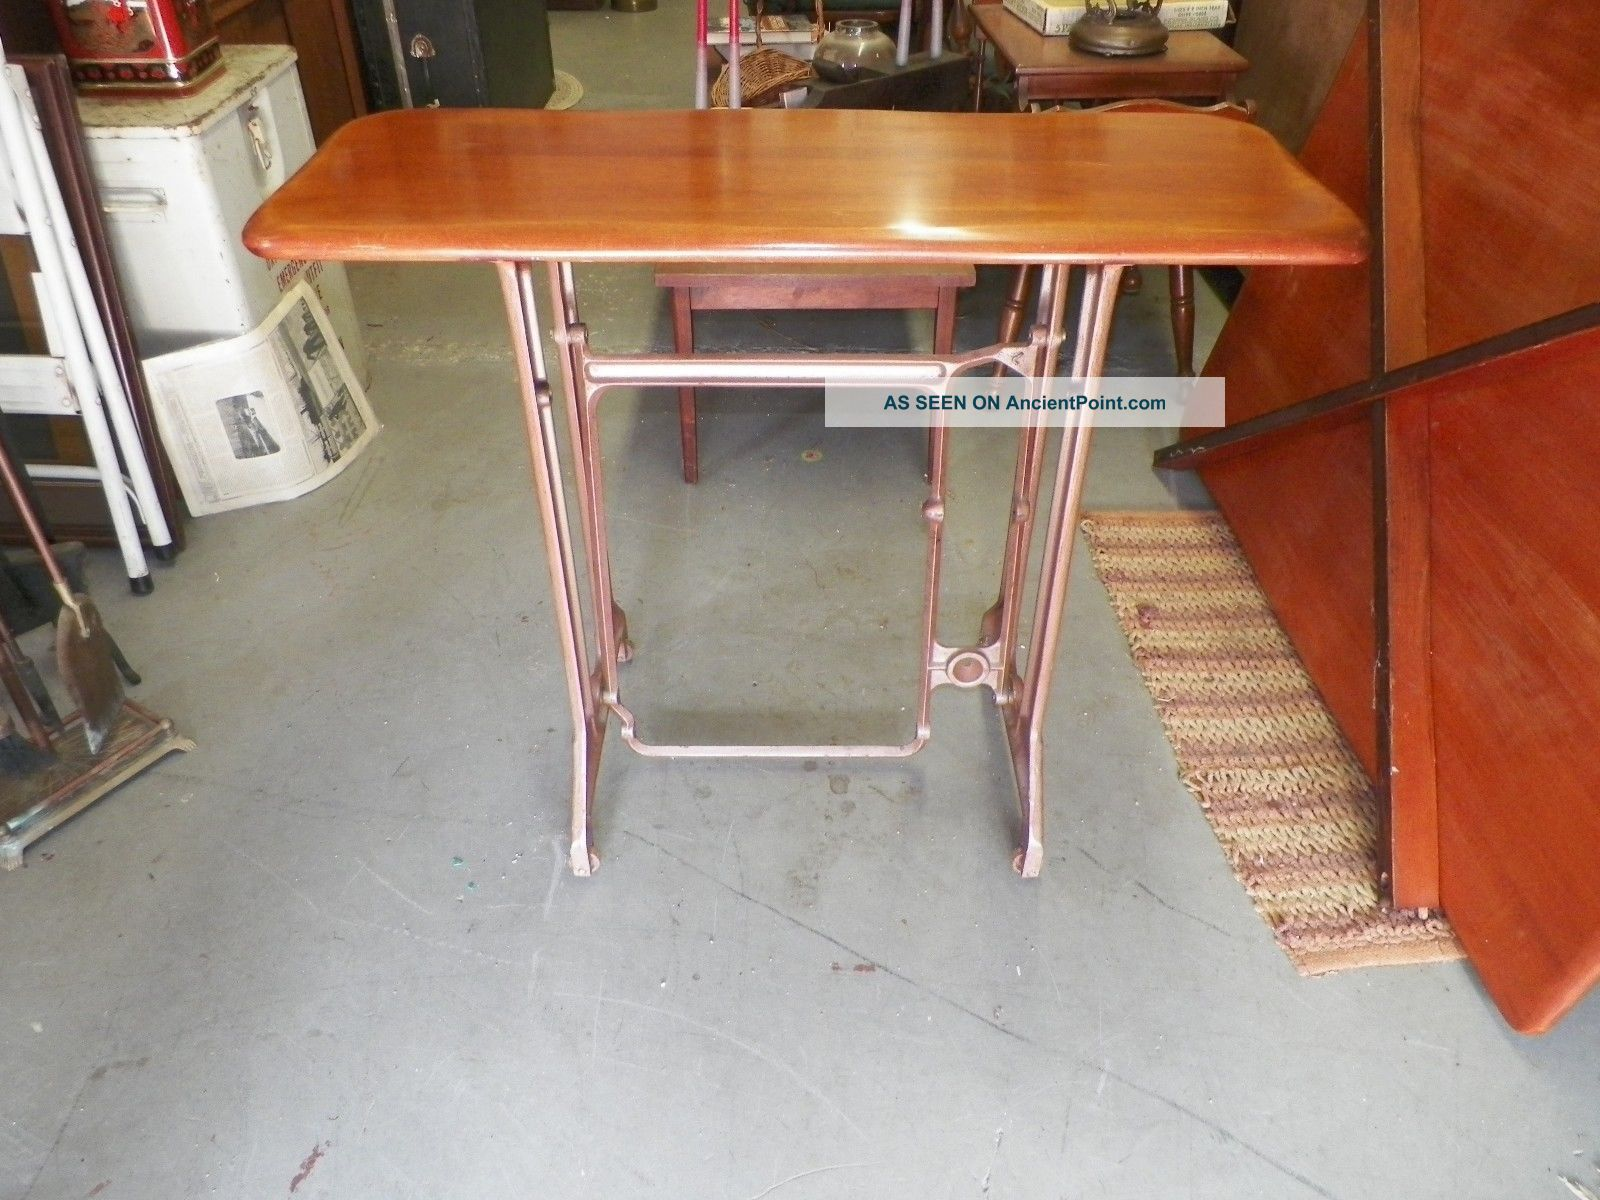 Antique Sewing Machine Treadle Custom Build Table Base Steam Punk Industrial Sewing Machines photo